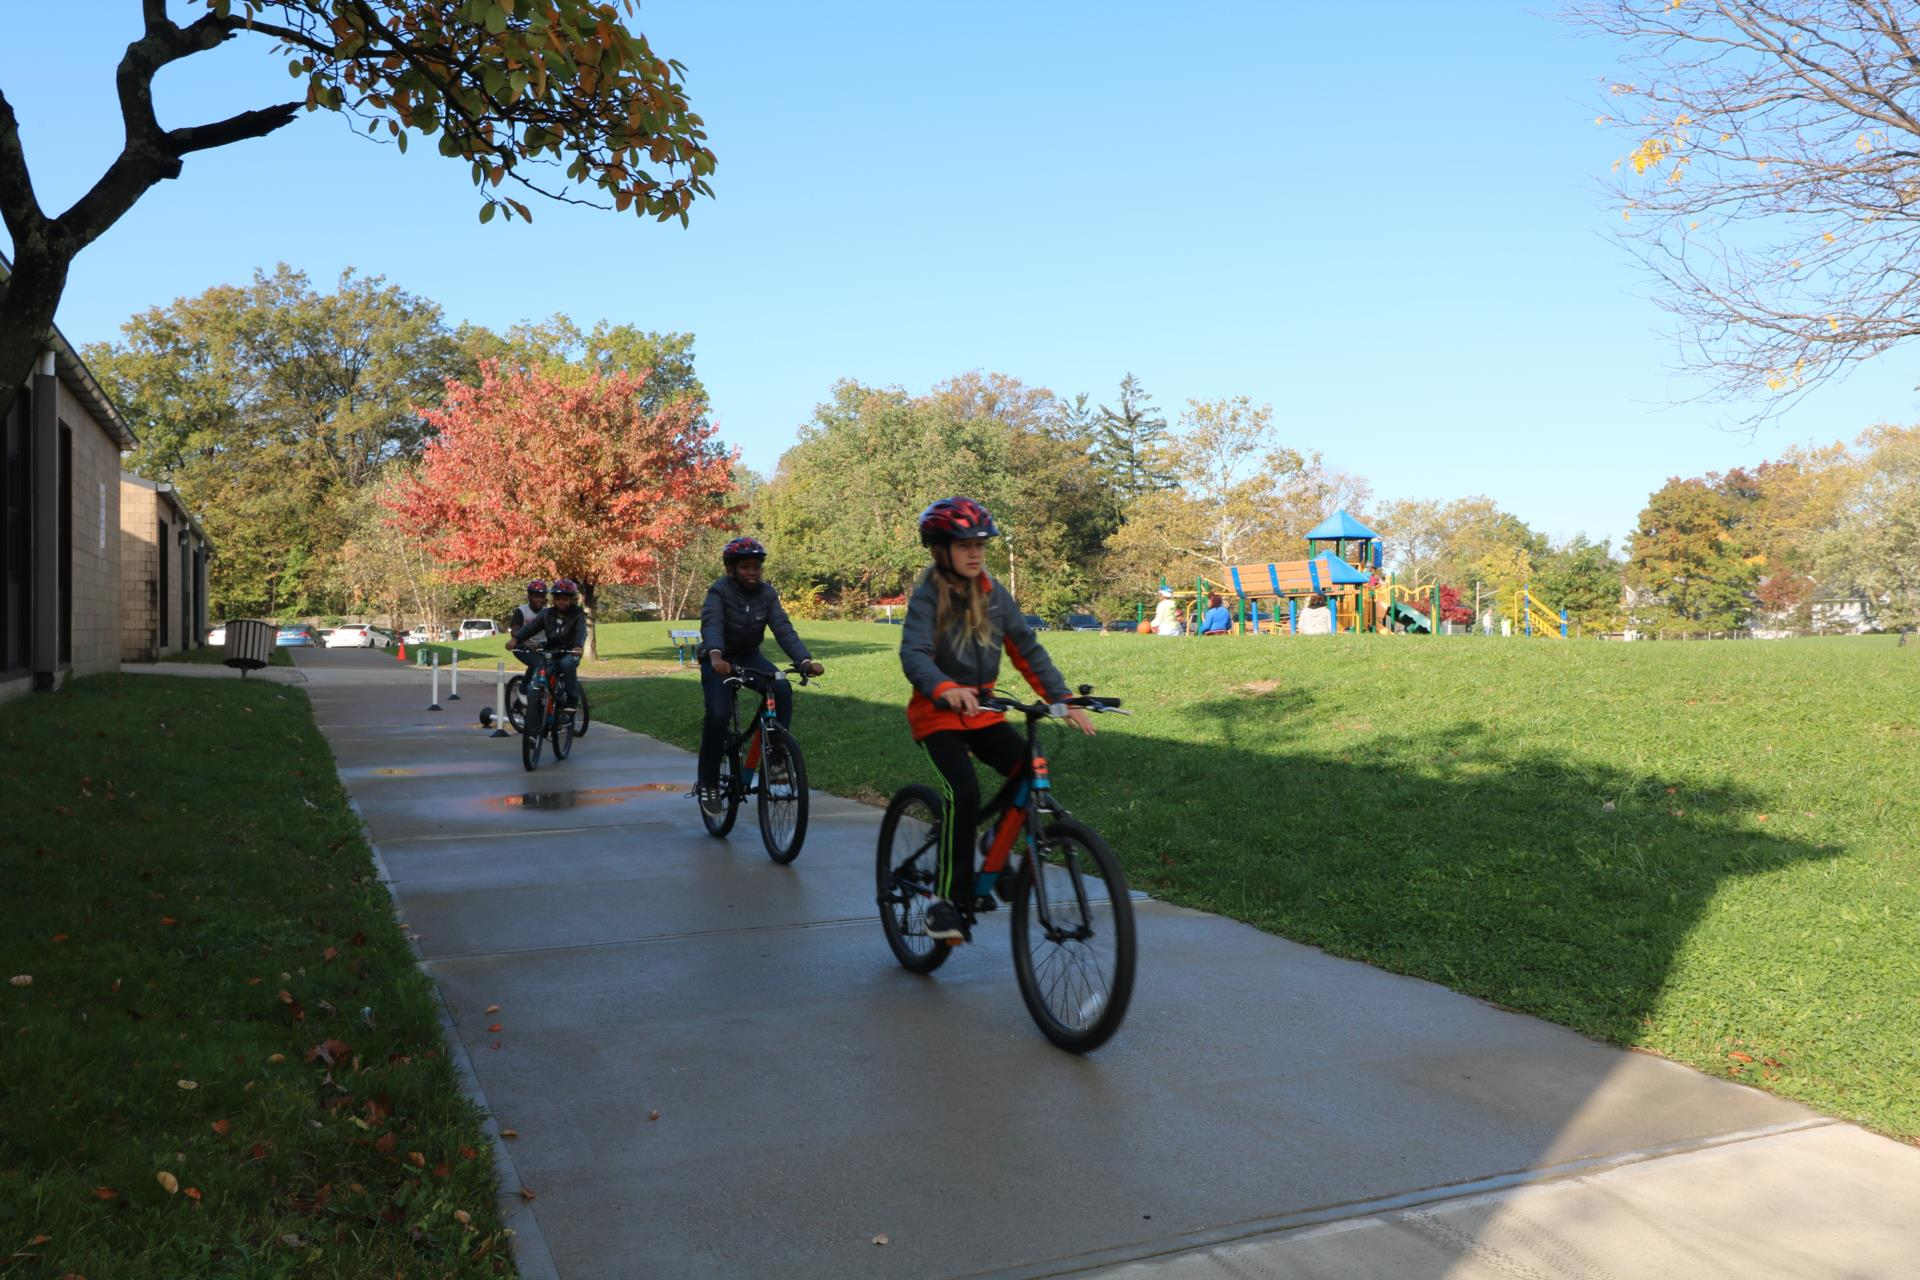 Students riding bikes on path